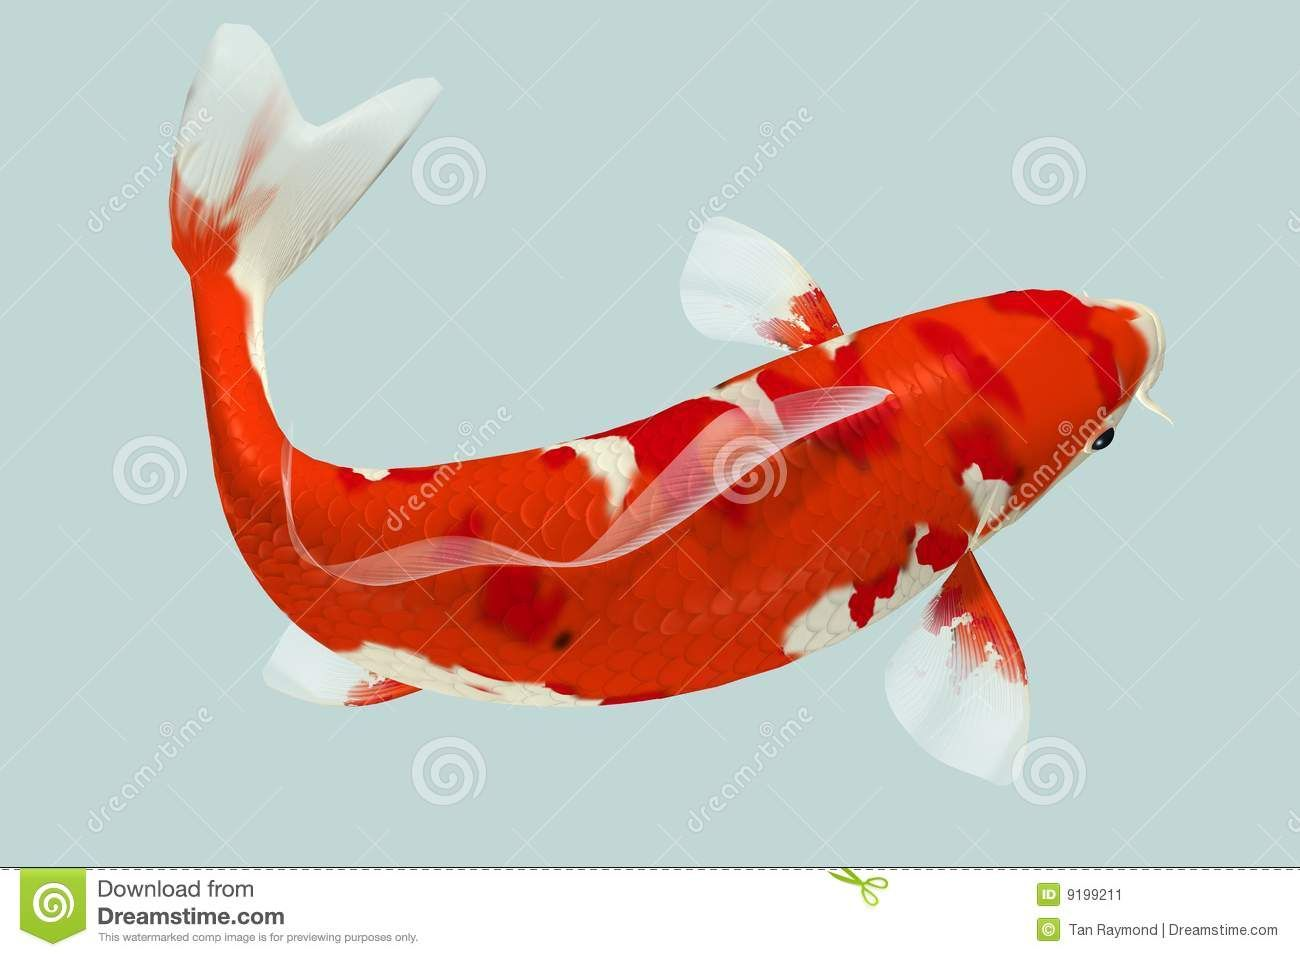 Related image | Koi Fish | Pinterest | Koi and Creatures